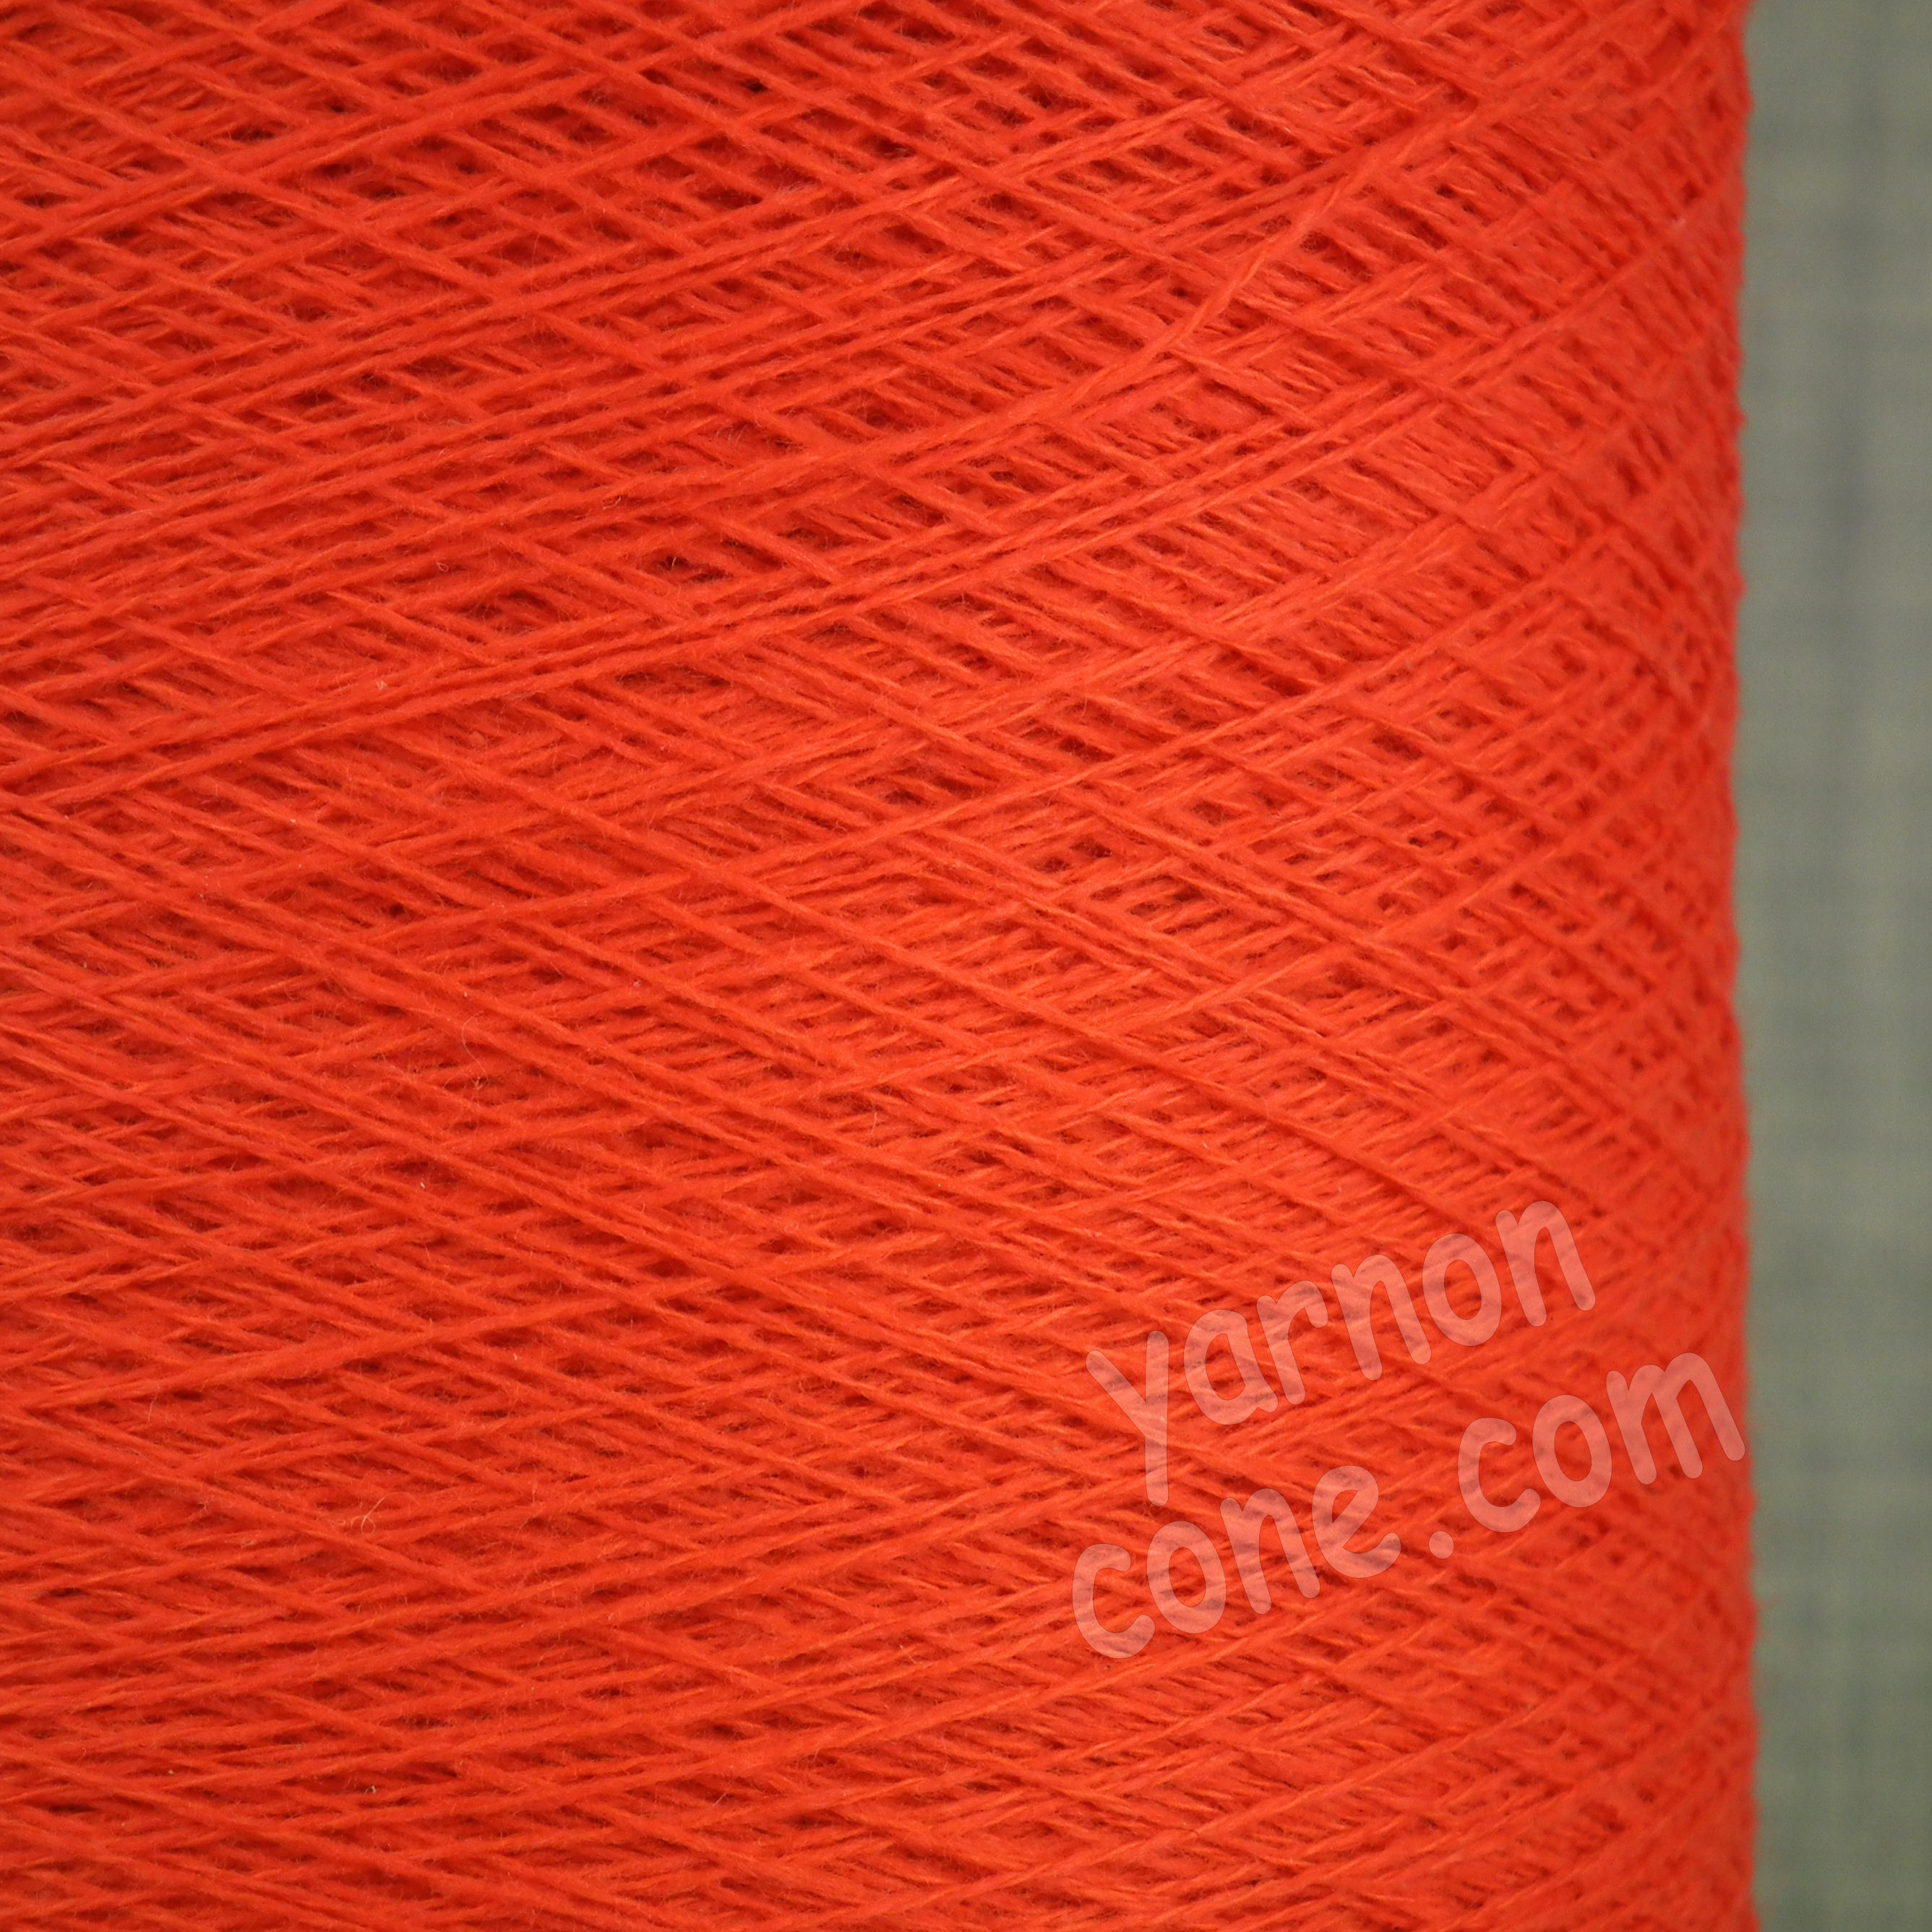 cashmere cotton todd duncan odyssey cone uk knitting soft yarn orange